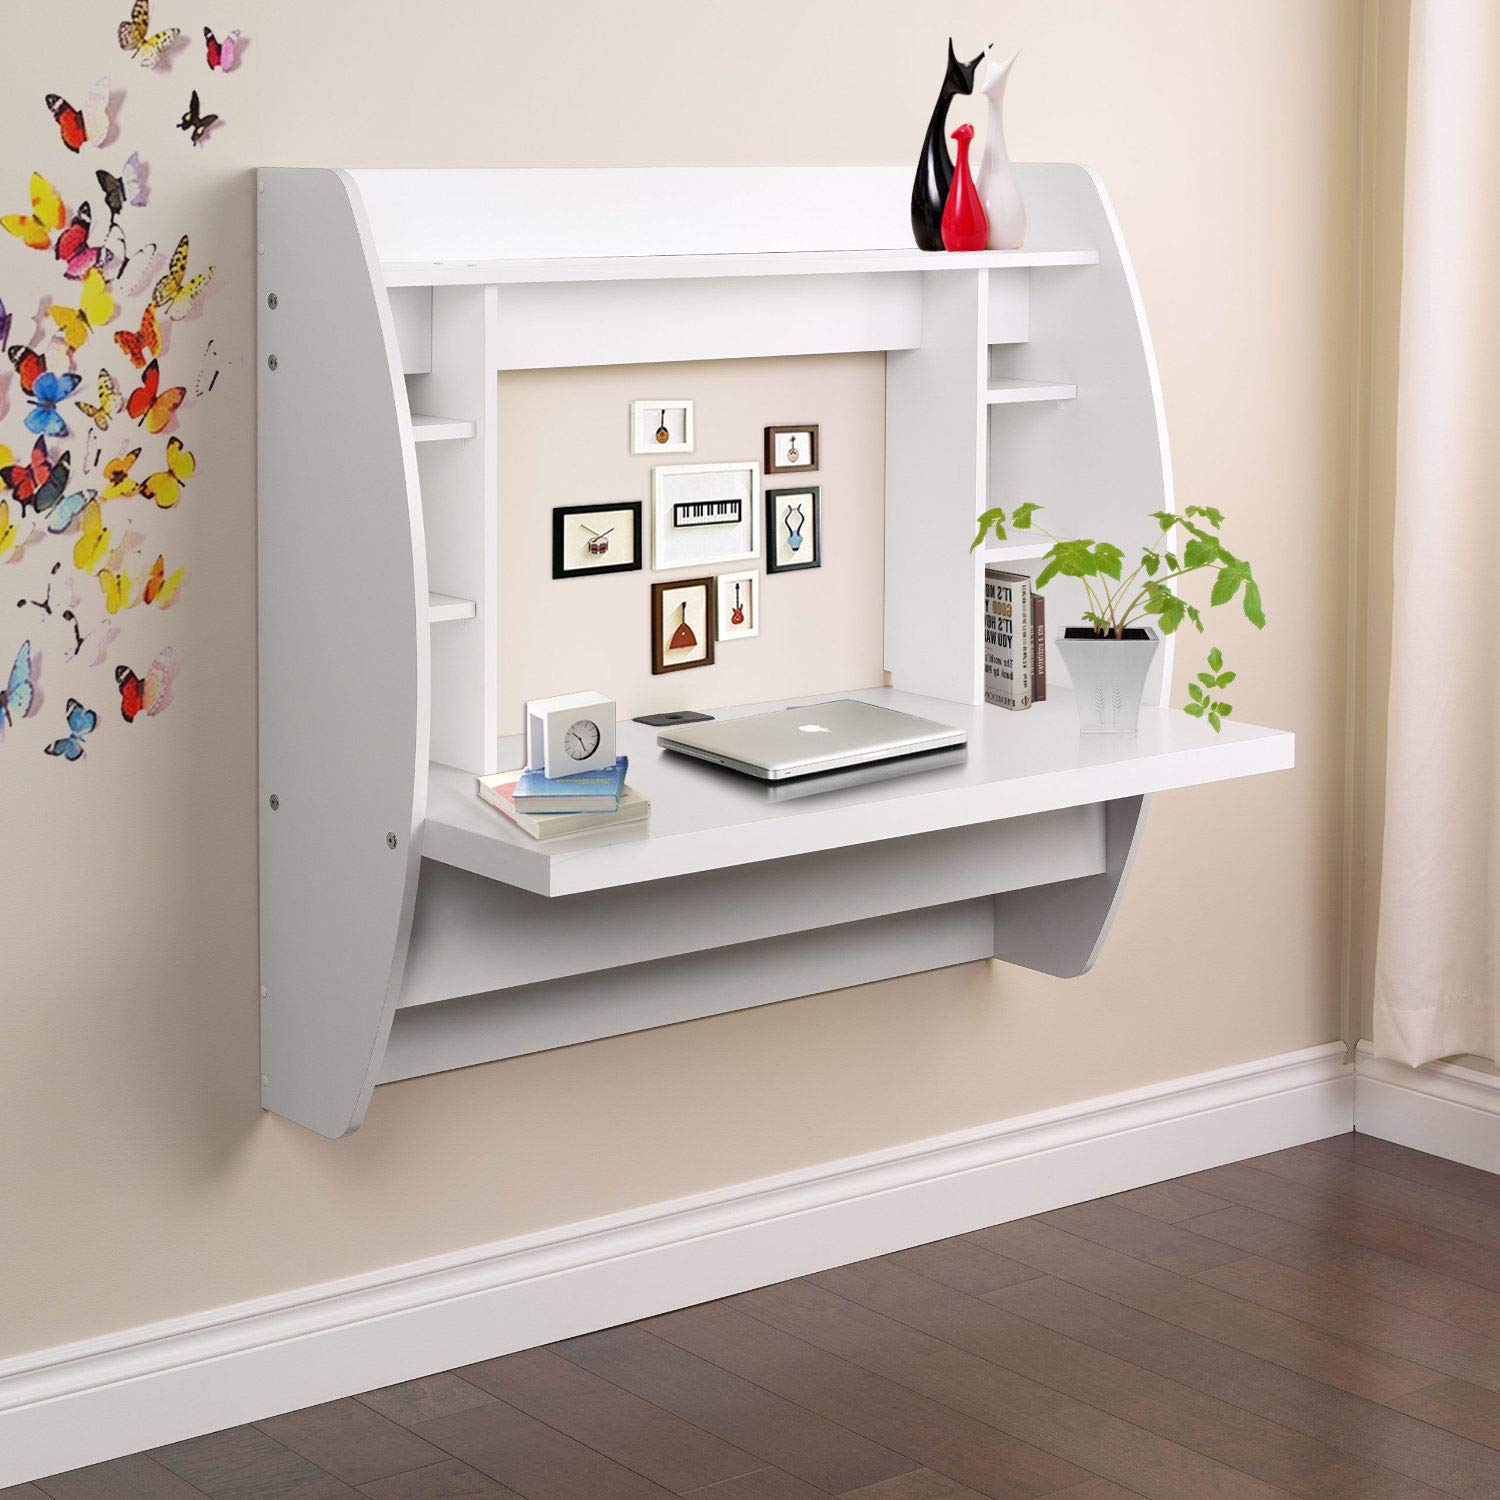 Prountet Home Office Computer Desk Table Floating Wall Mount Desk W/Storage Shelves White by Prountet